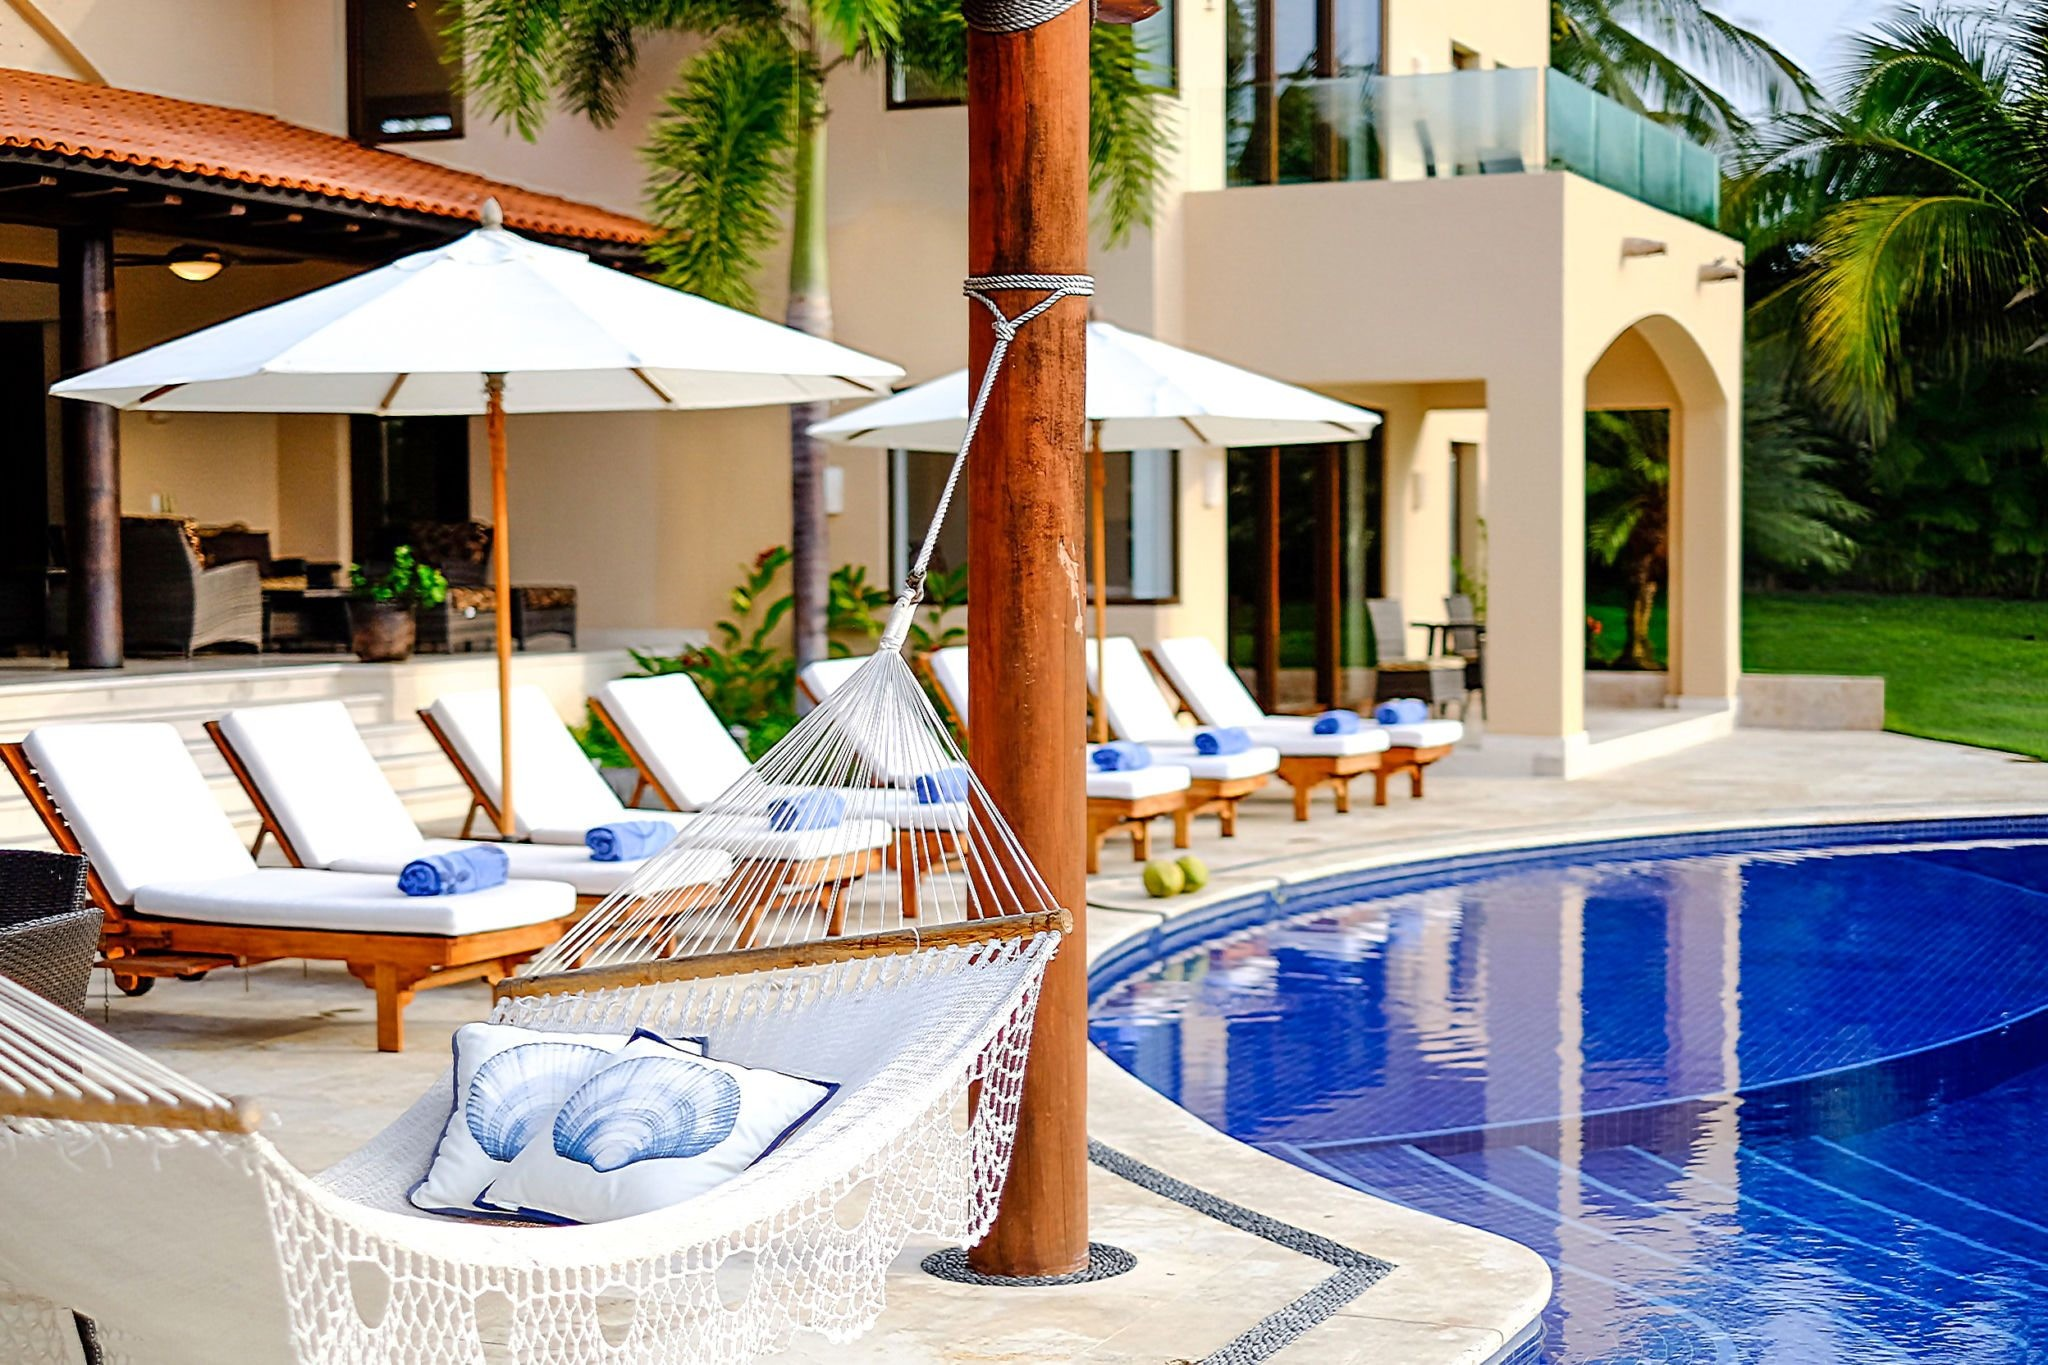 Enjoy Relaxing By The Pool